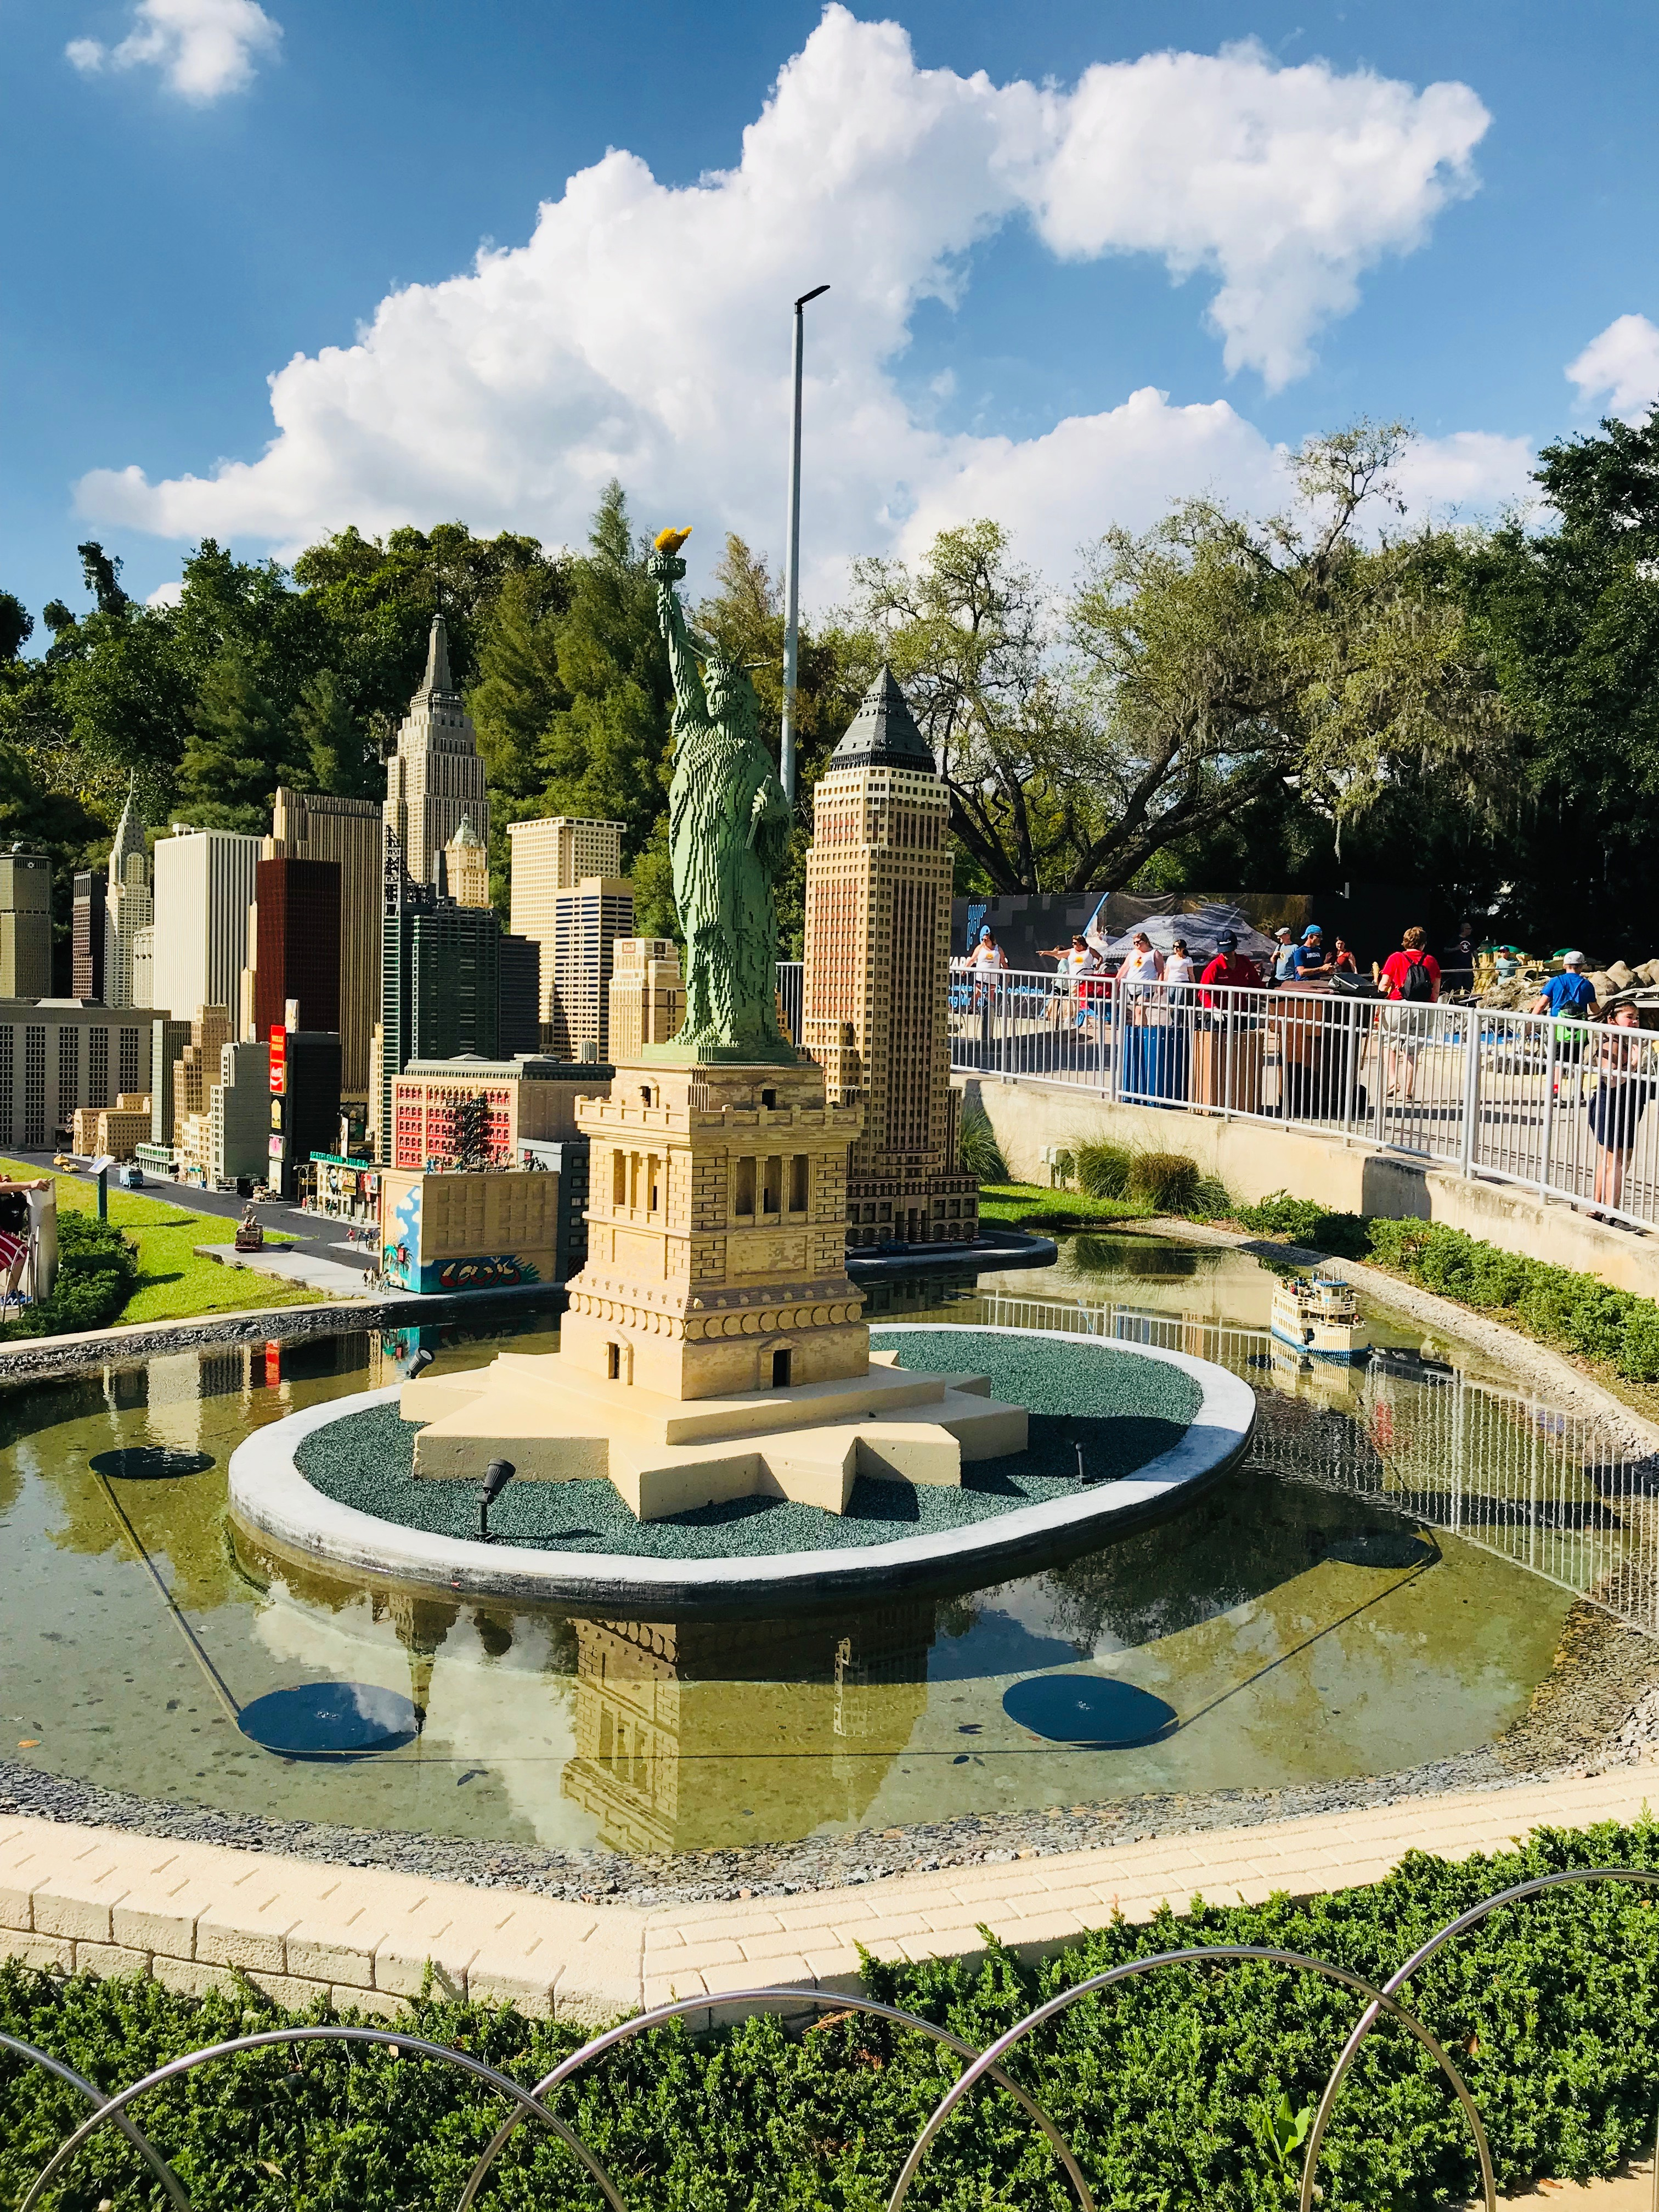 Miniland USA at LegoLand Florida